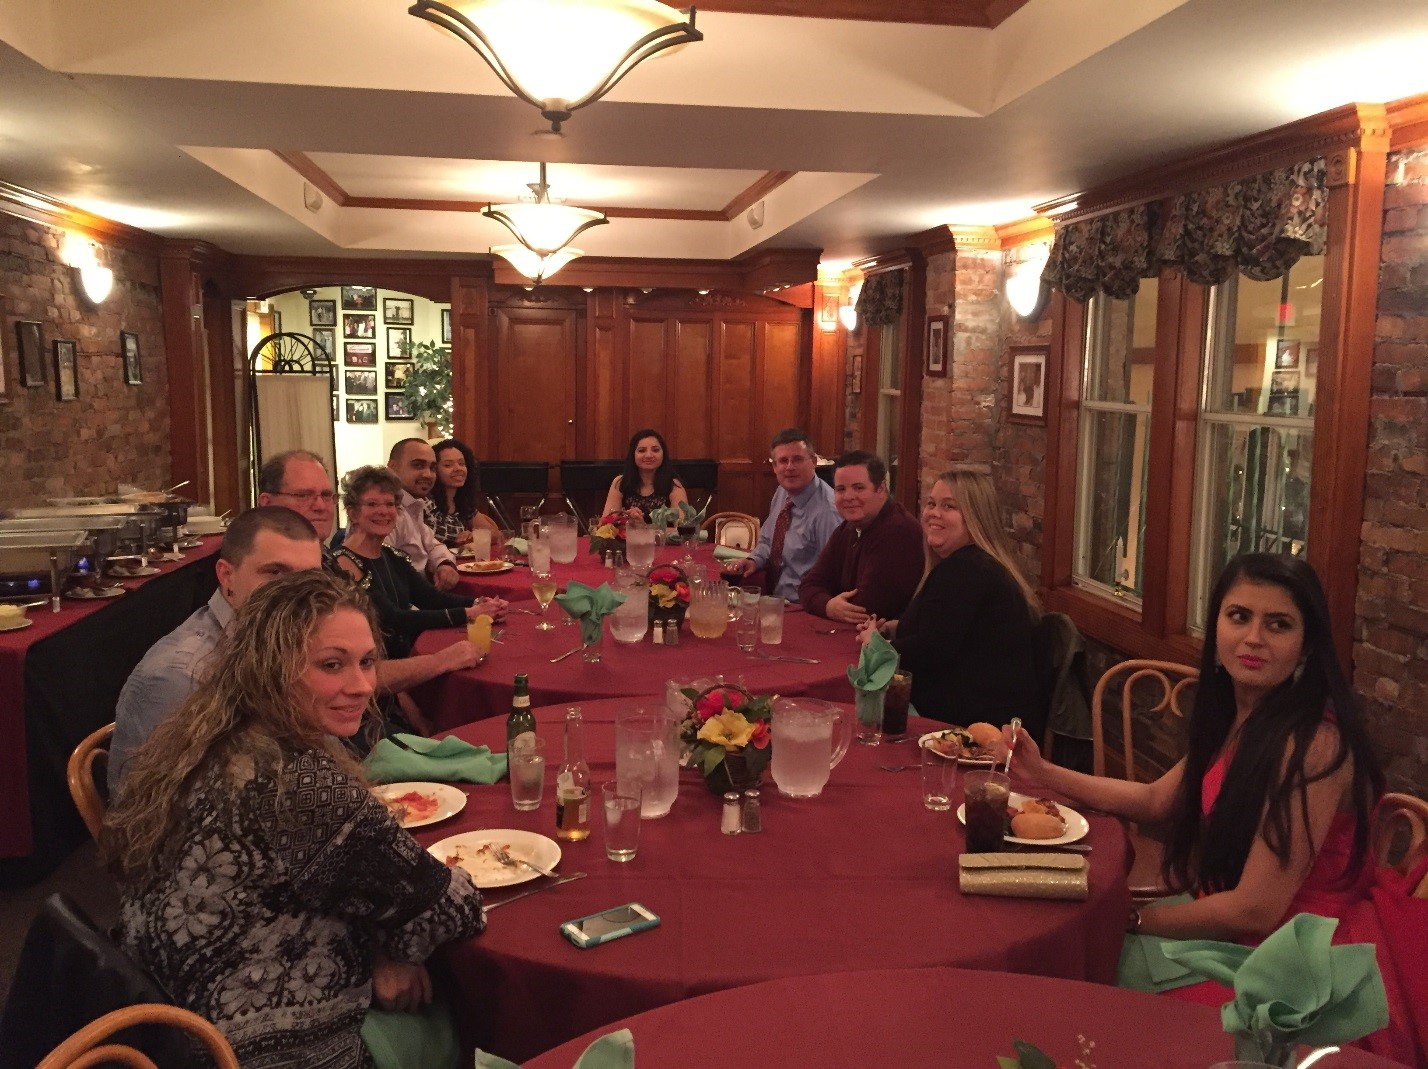 ActioNet employees together enjoying holiday dinner